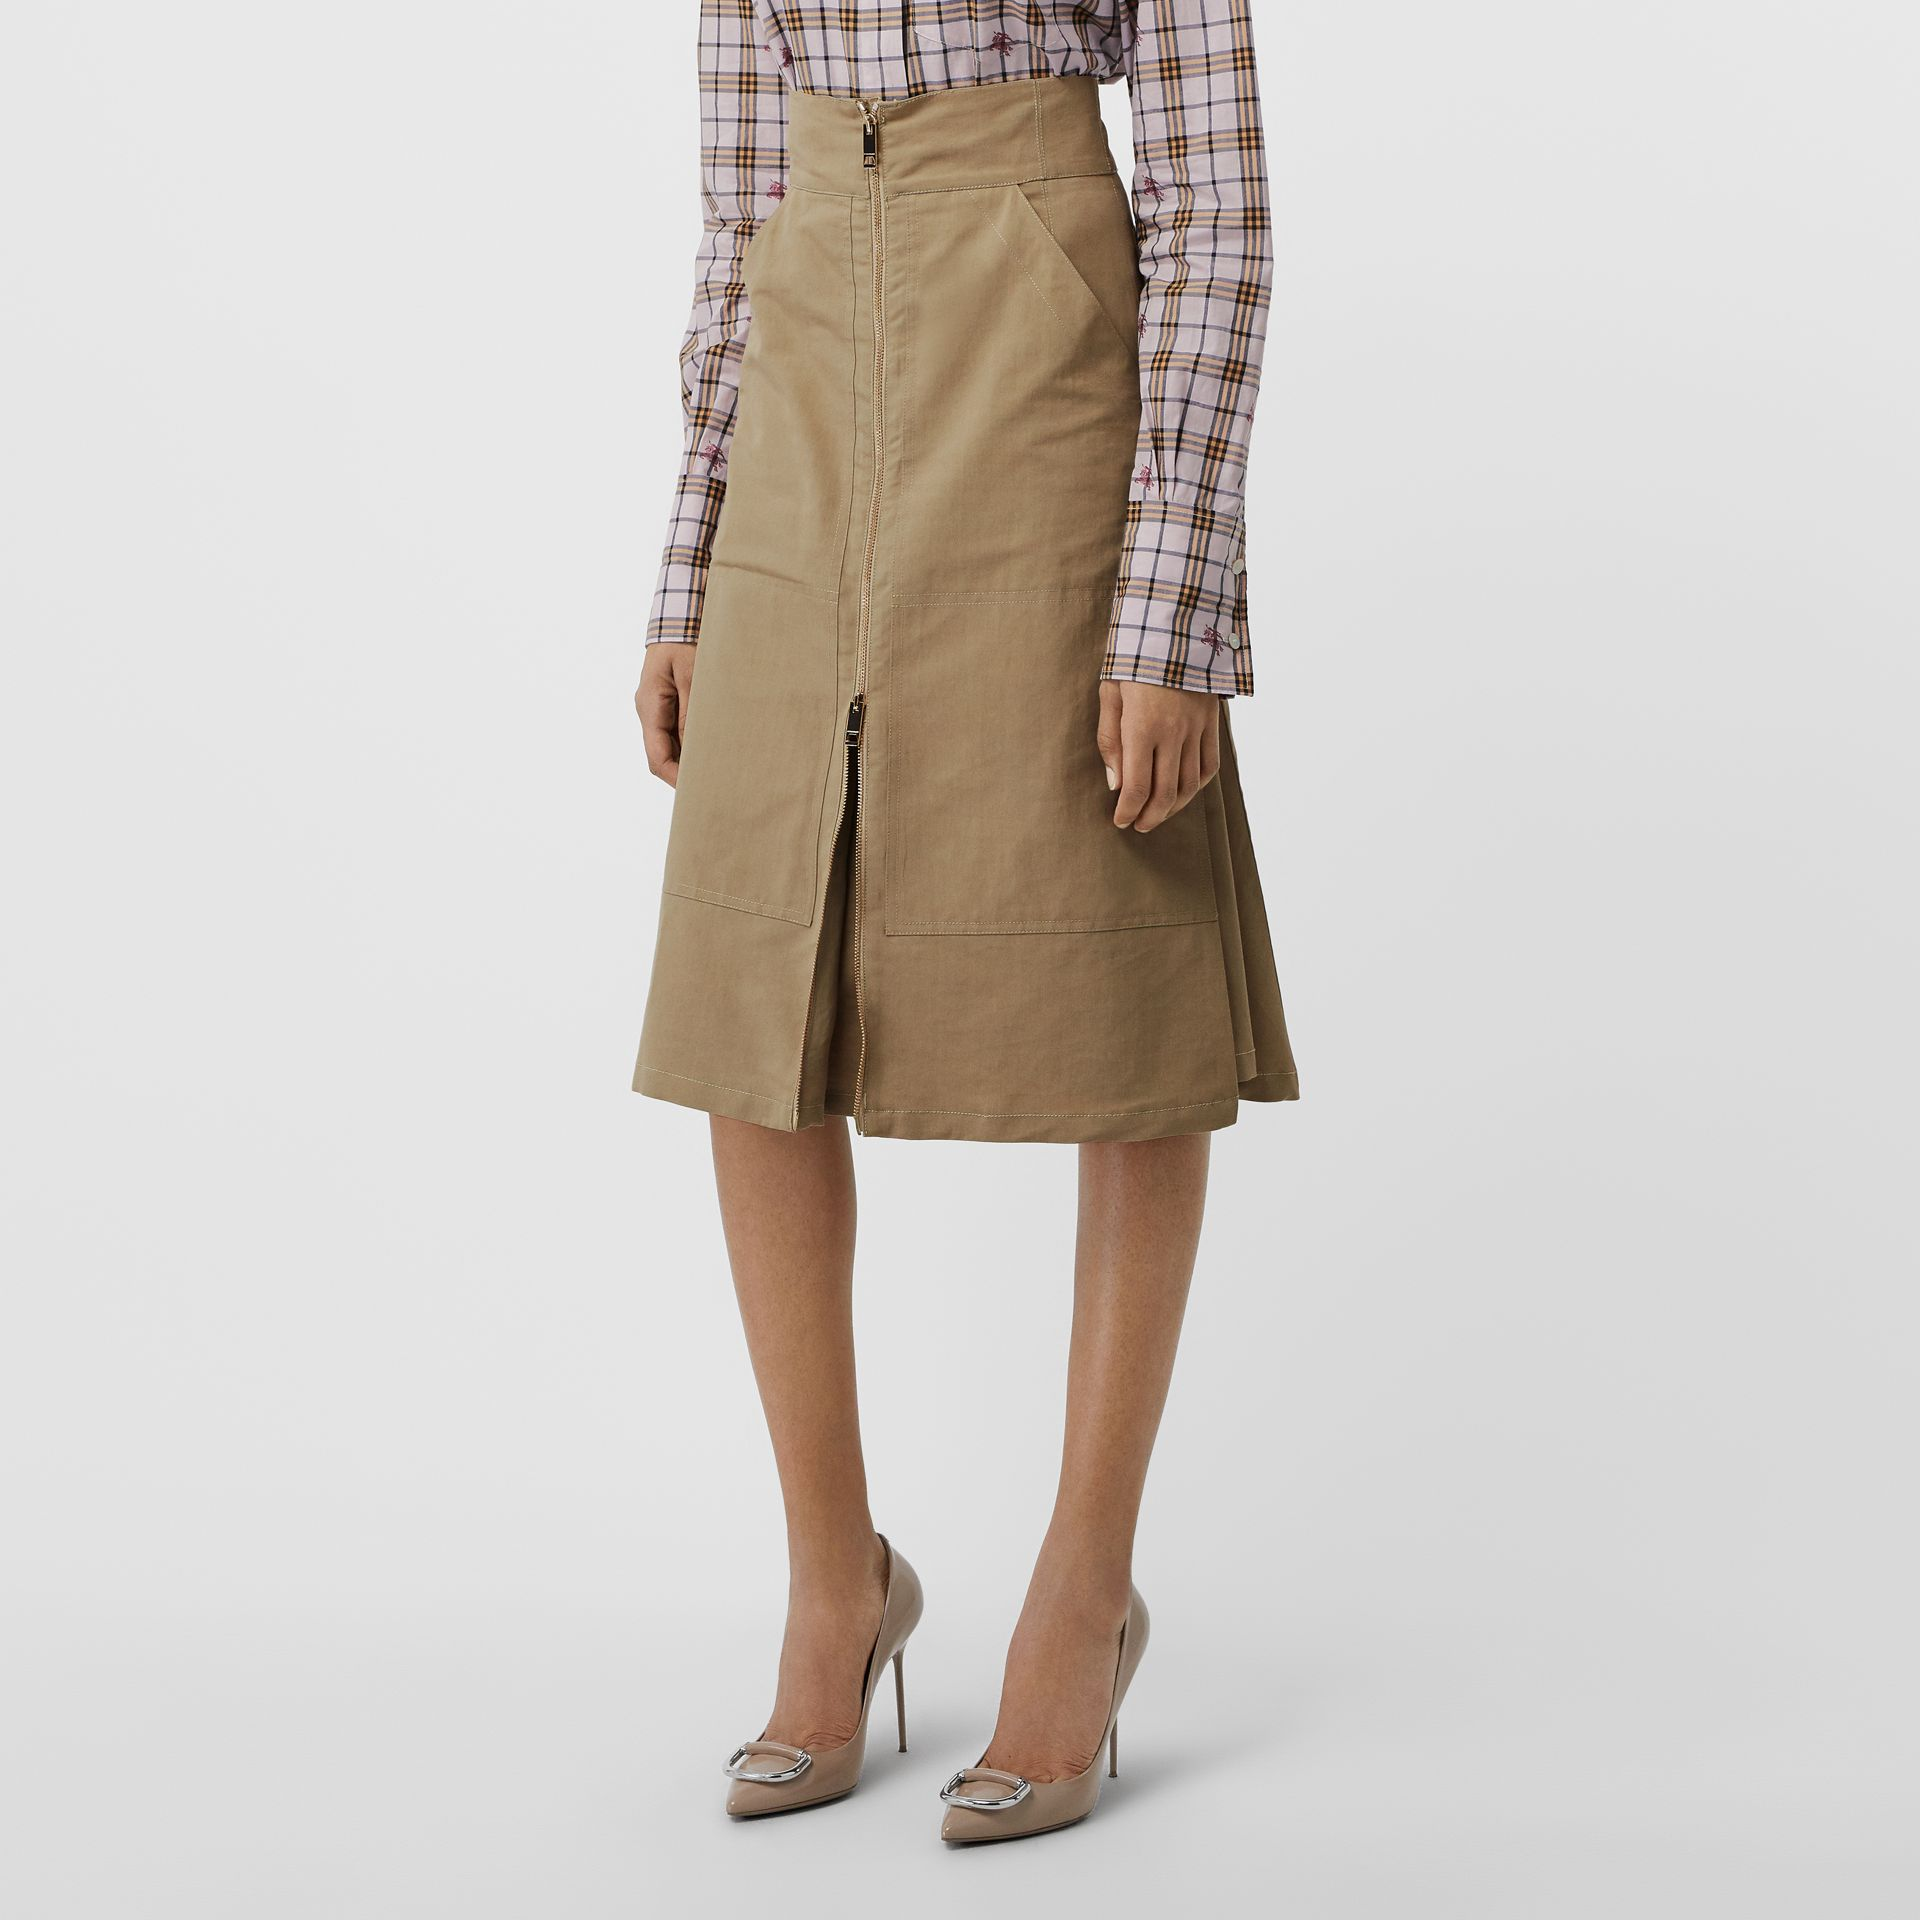 Cotton Silk High-waisted Skirt in Beige - Women | Burberry Singapore - gallery image 5